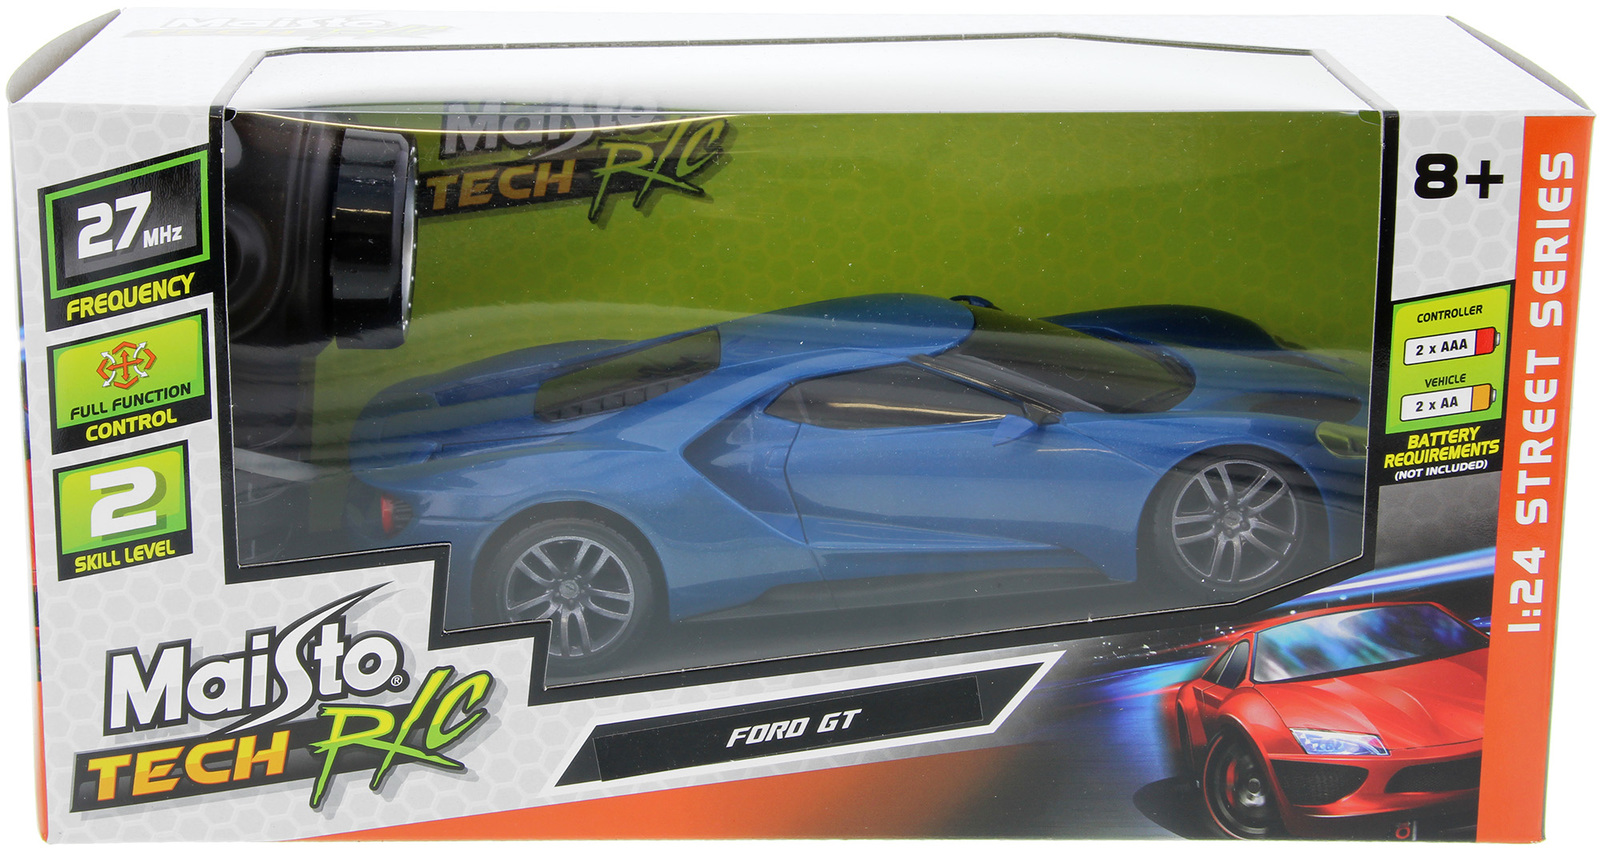 Maisto Tech R/C - Ford GT image